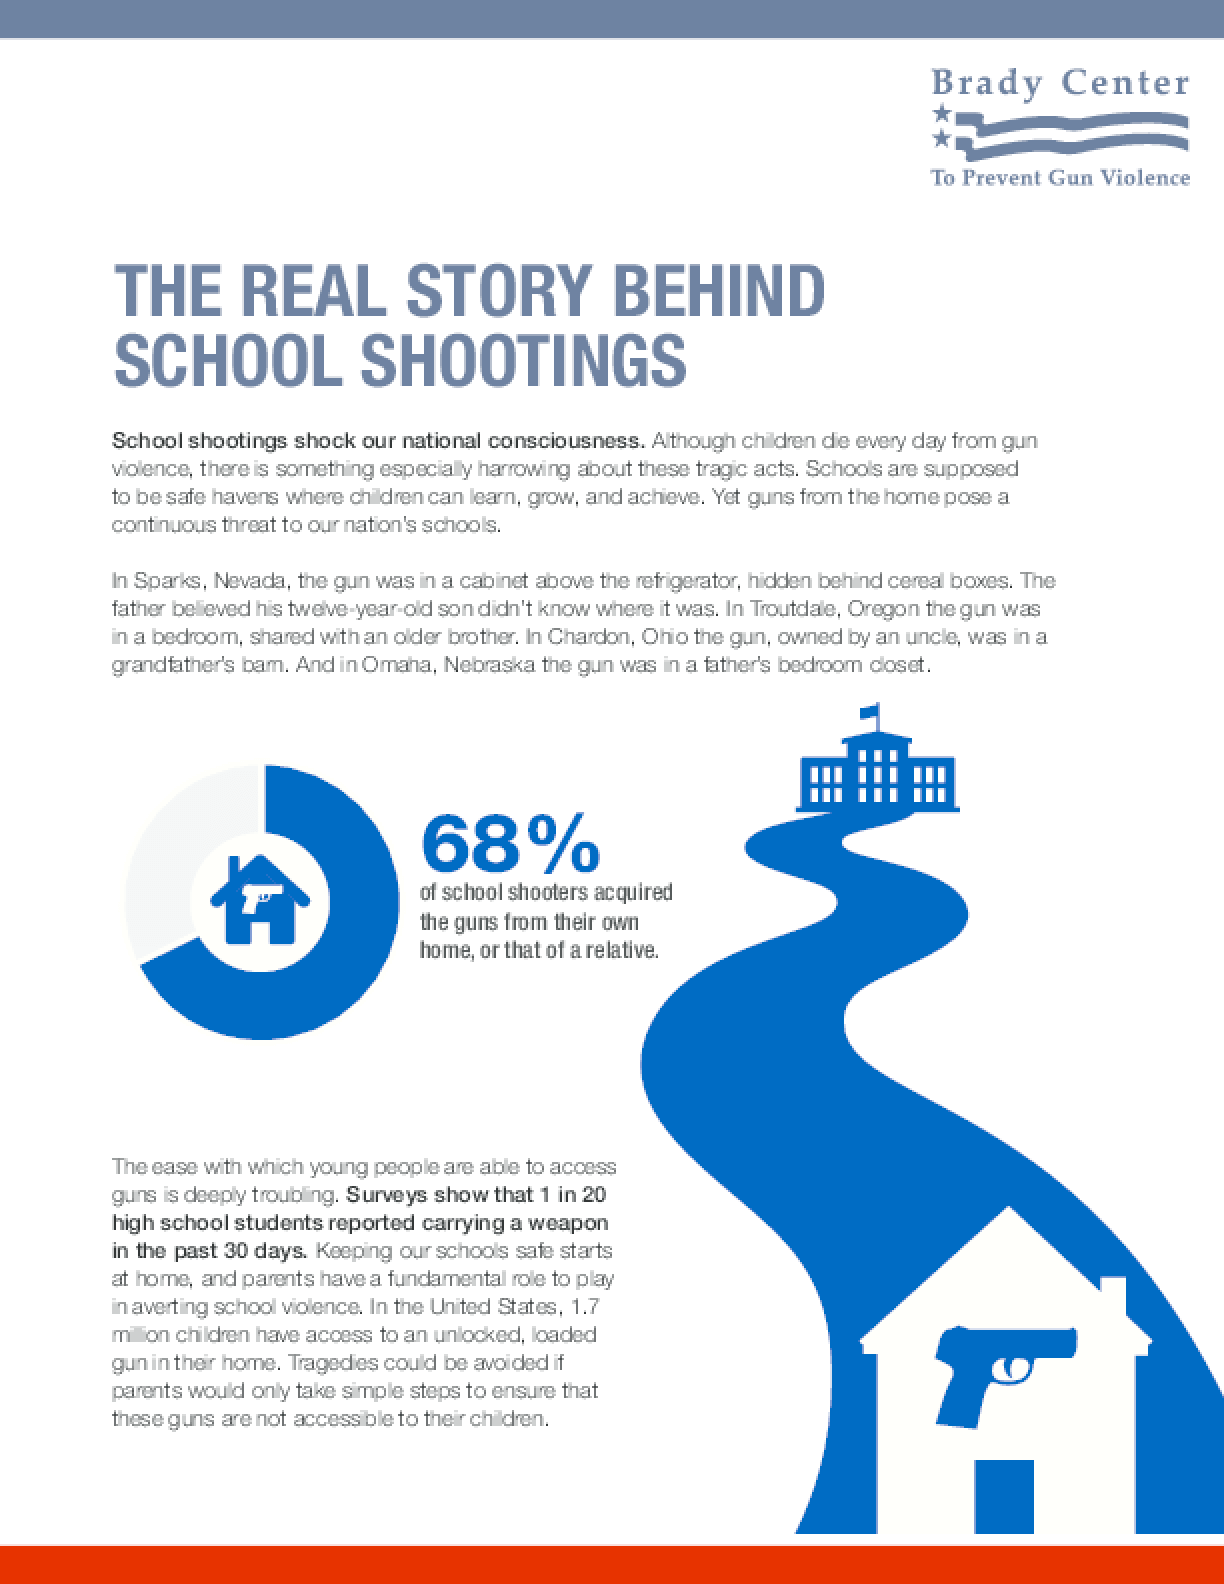 The Real Story Behind School Shootings